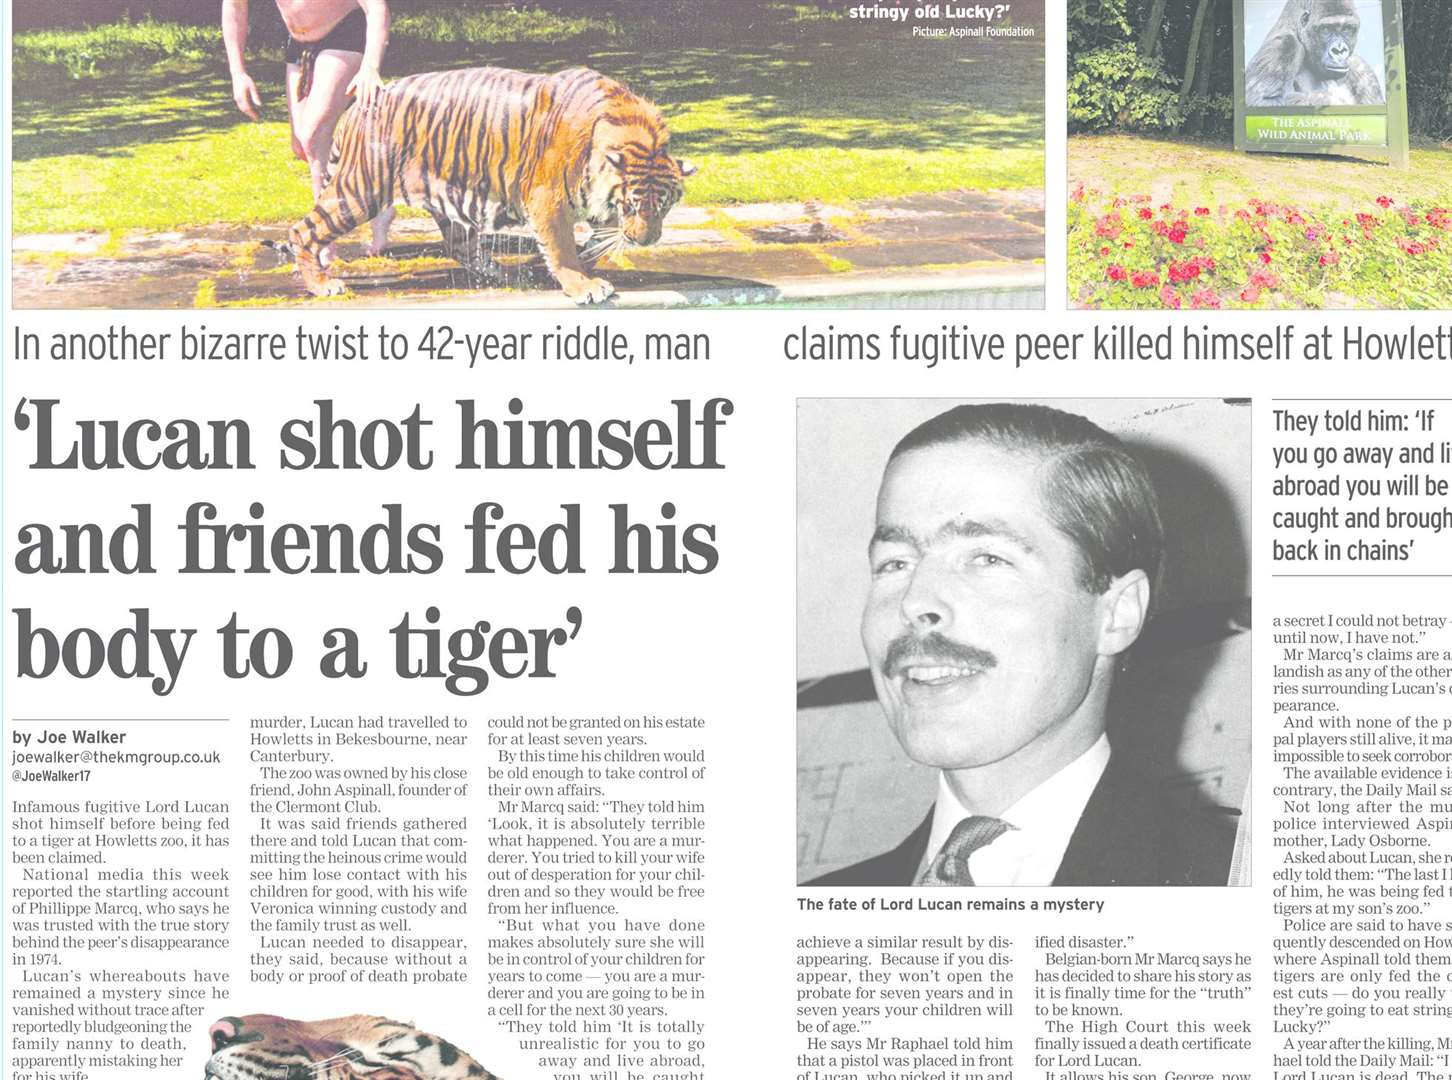 How our sister title, the Kentish Gazette, revealed one of the recent revelations about Lord Lucan's fate